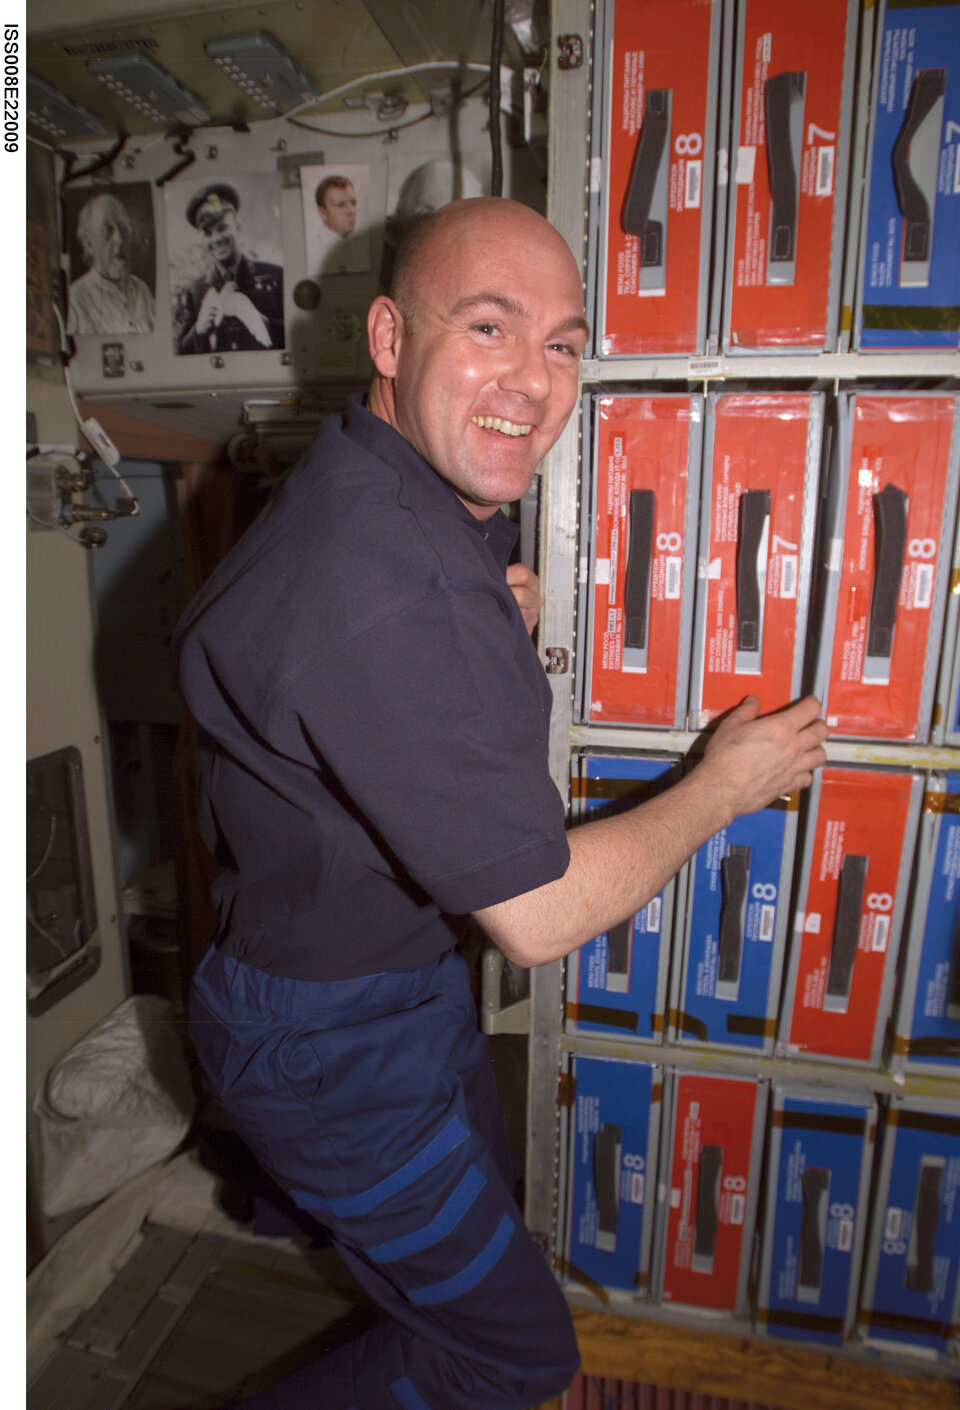 Dutch ESA Astronaut André Kuipers in the ISS larder